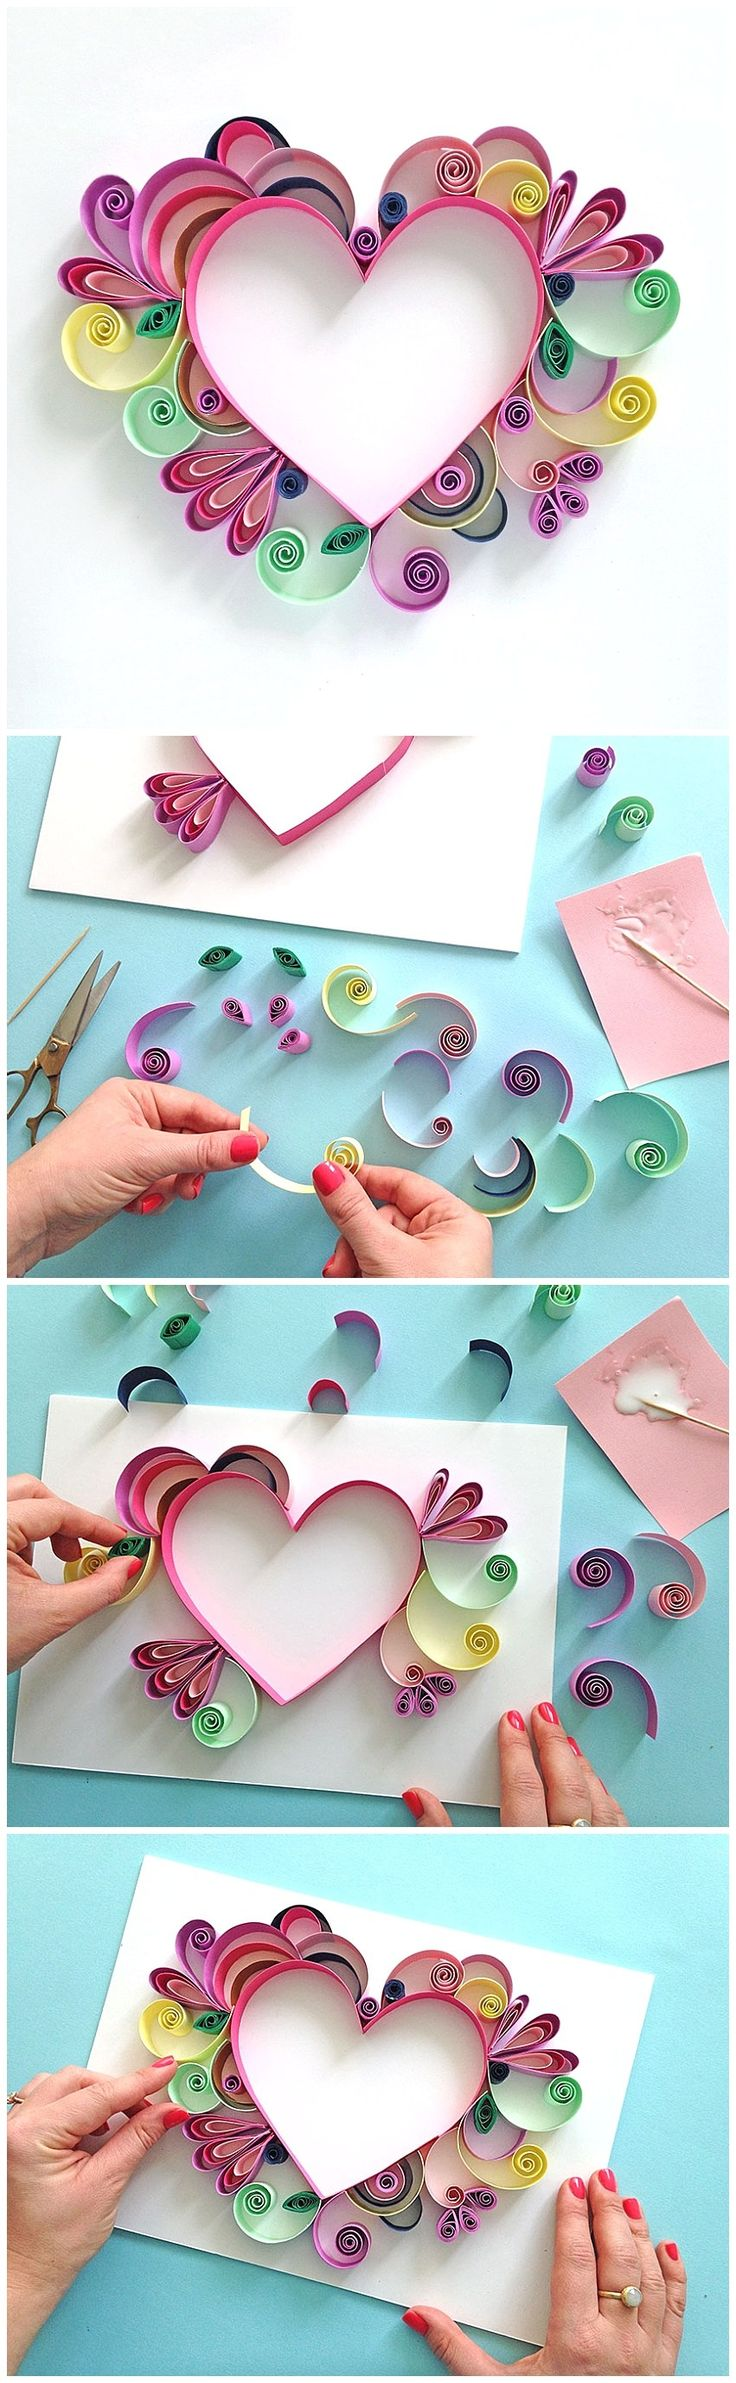 Best 25+ Easy paper crafts ideas on Pinterest | Arts and ...